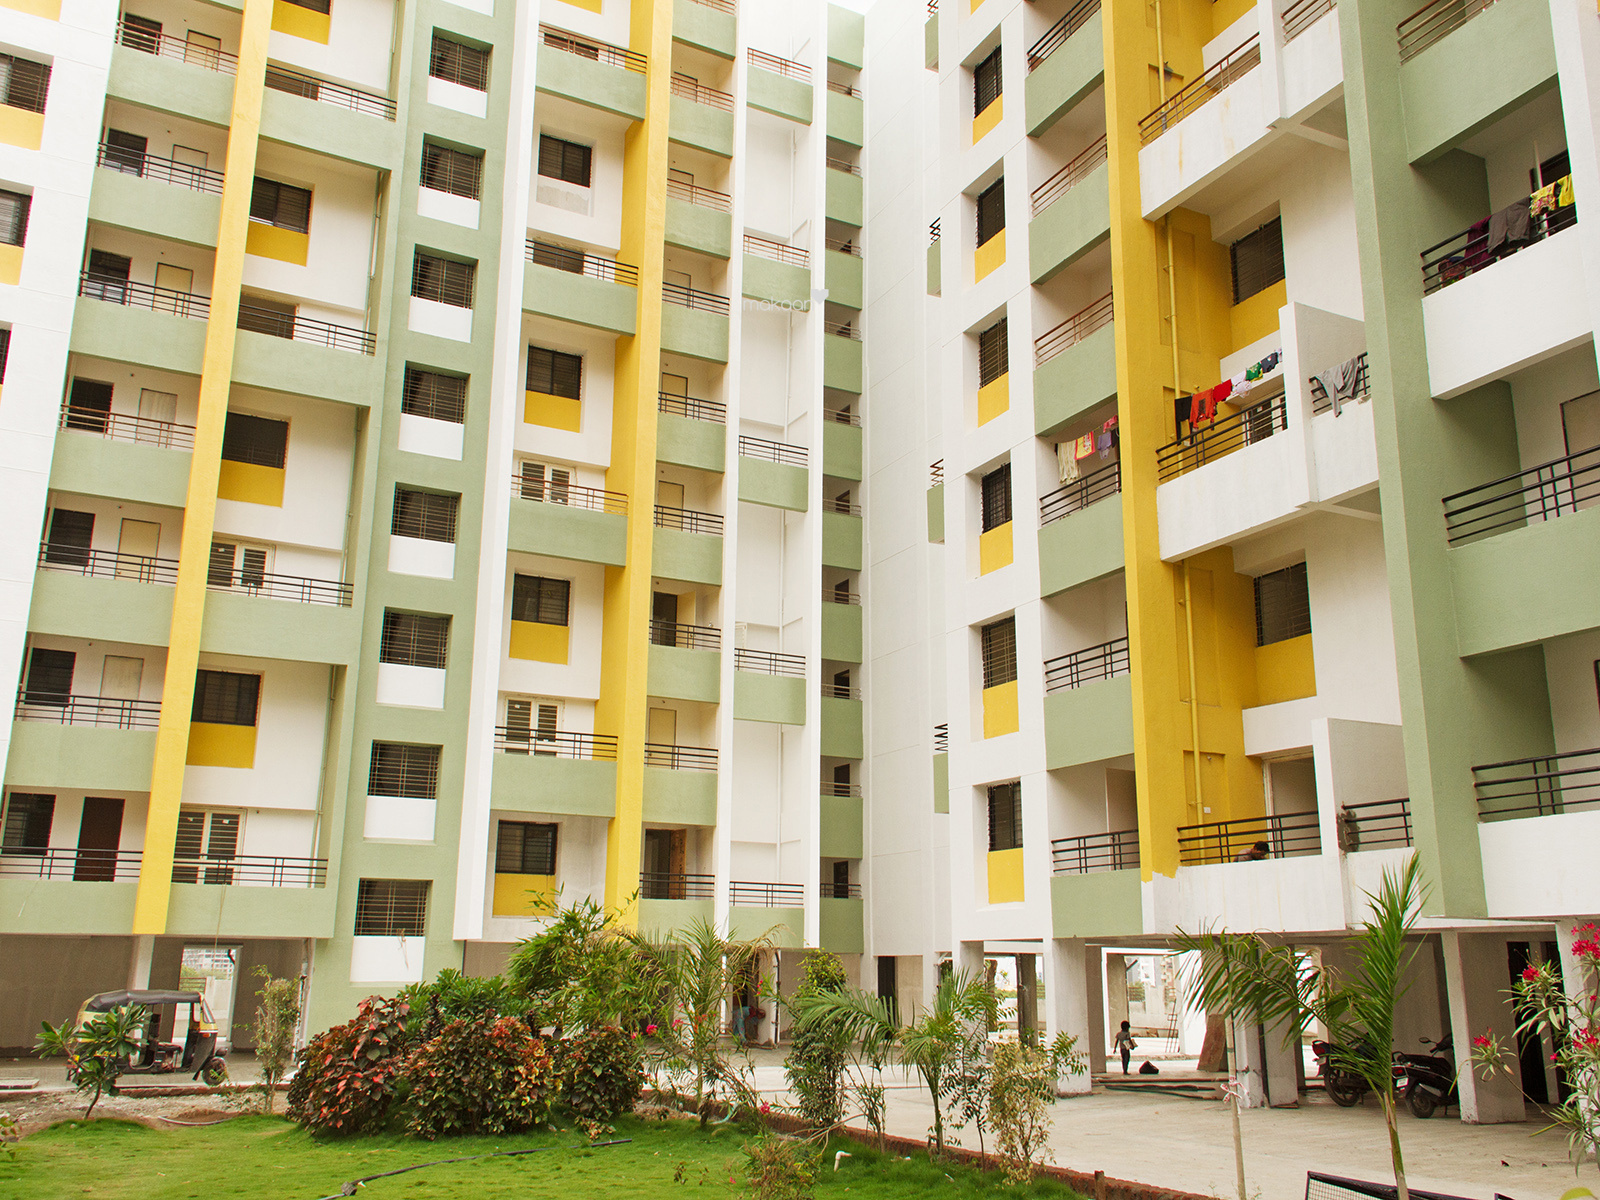 990 sq ft 2BHK 2BHK+2T (990 sq ft) Property By Proptiger In Umang Primo, Wagholi